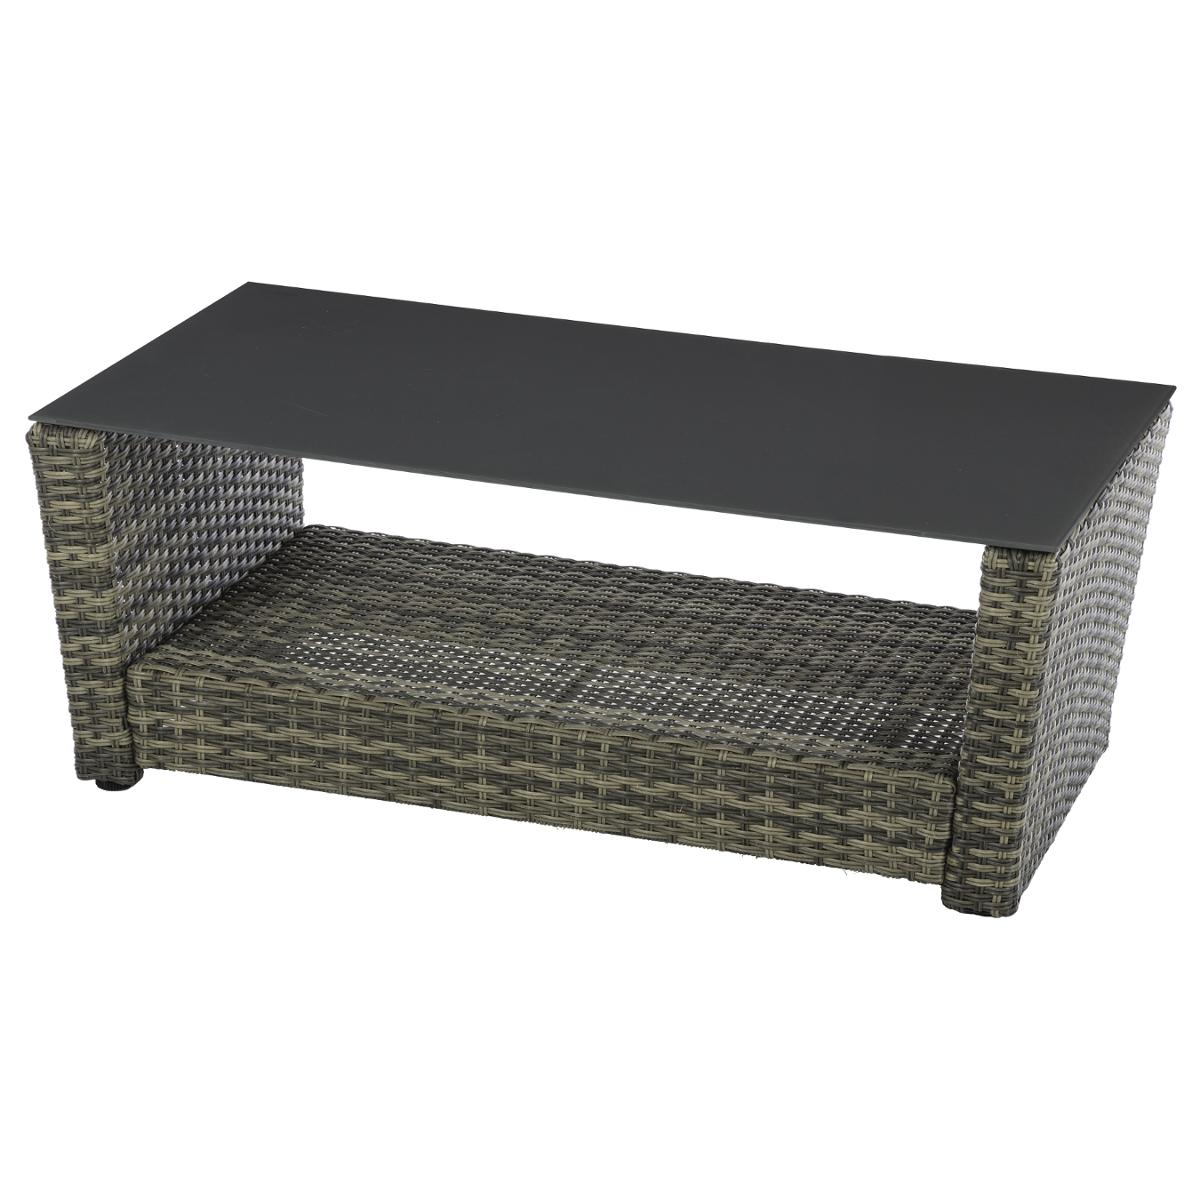 TABLE BASSE POLYNESIA NATURAE